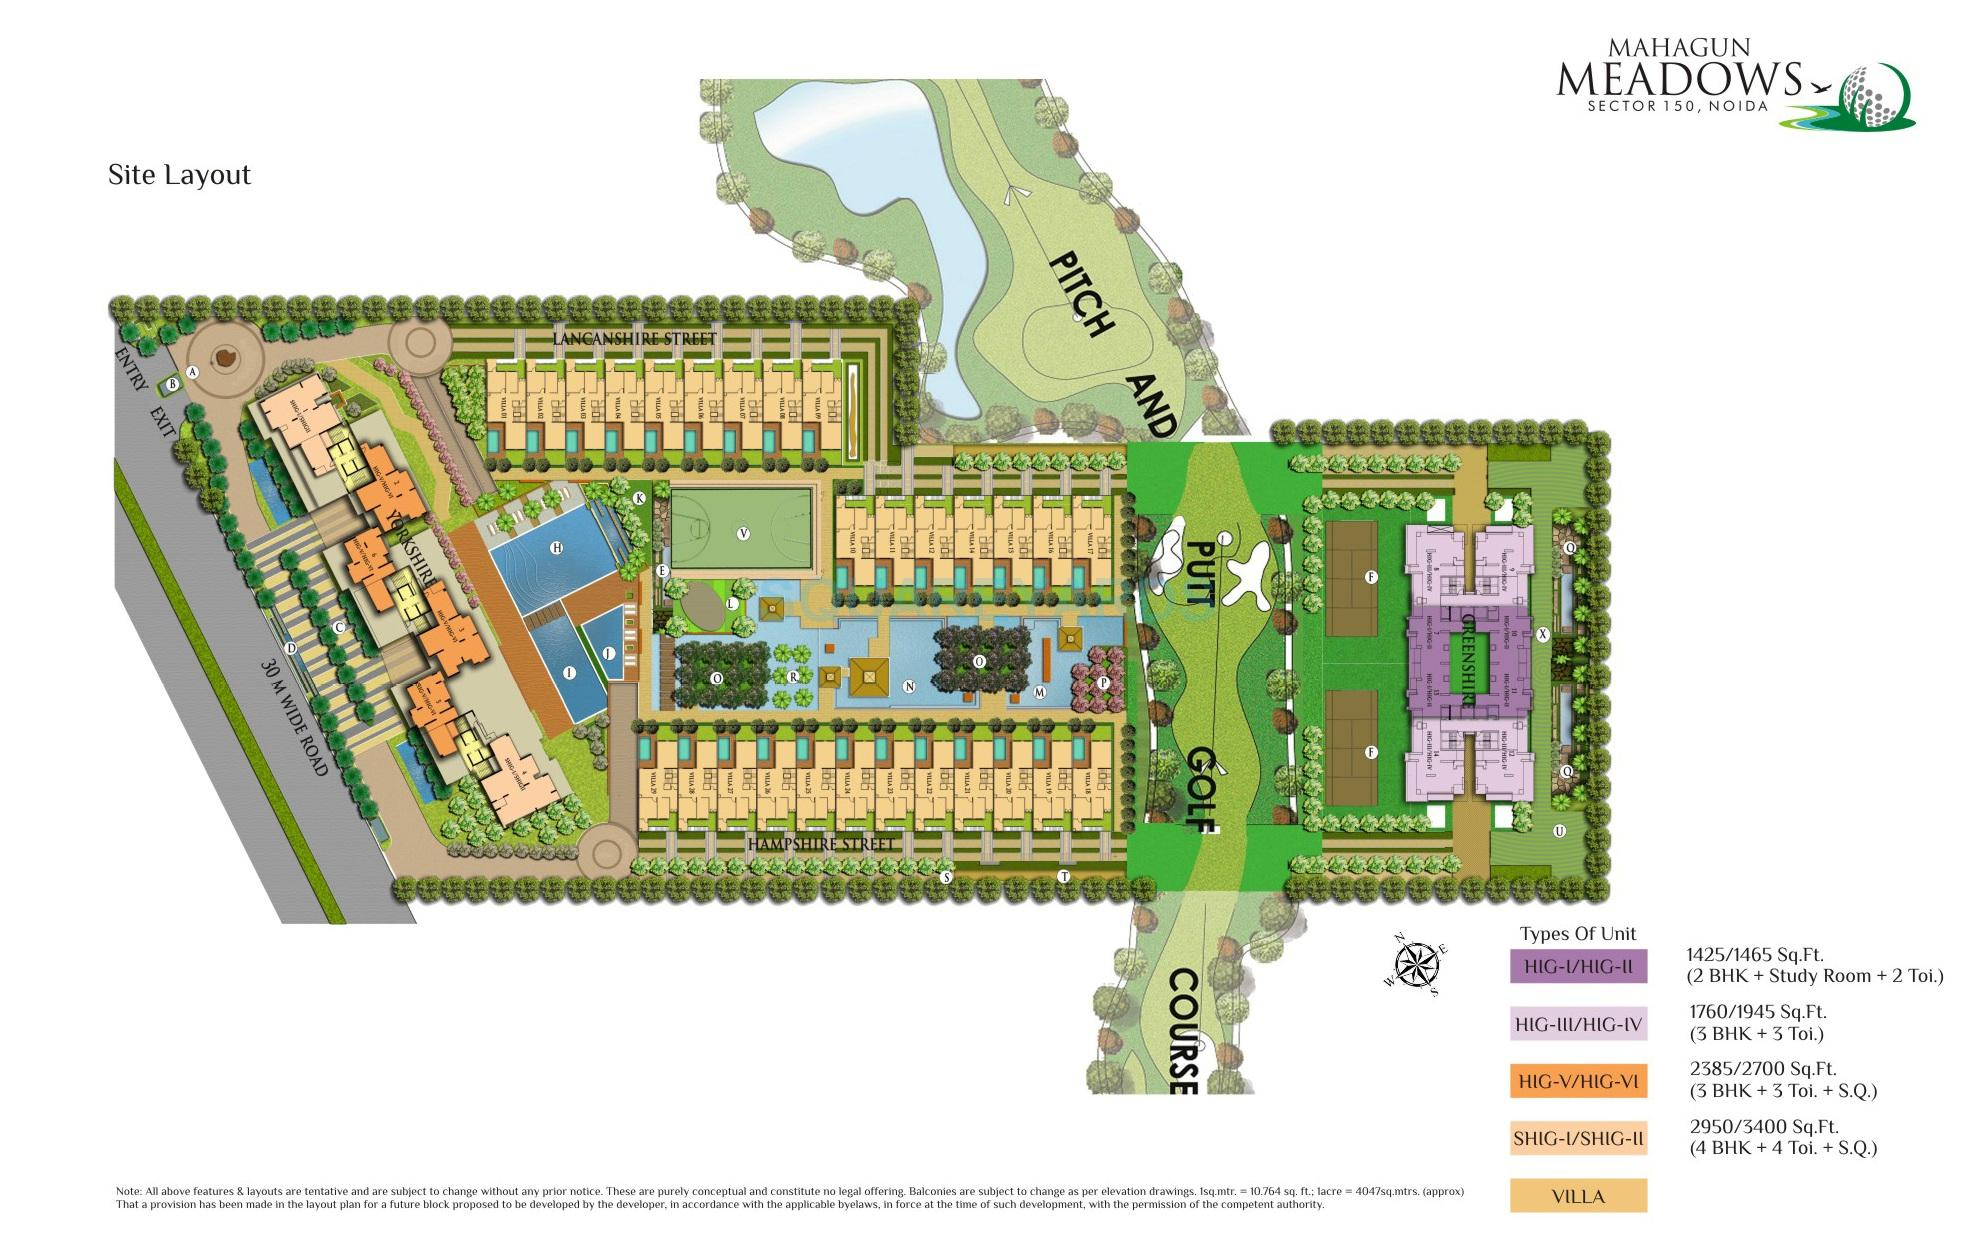 mahagun meadows master plan image1